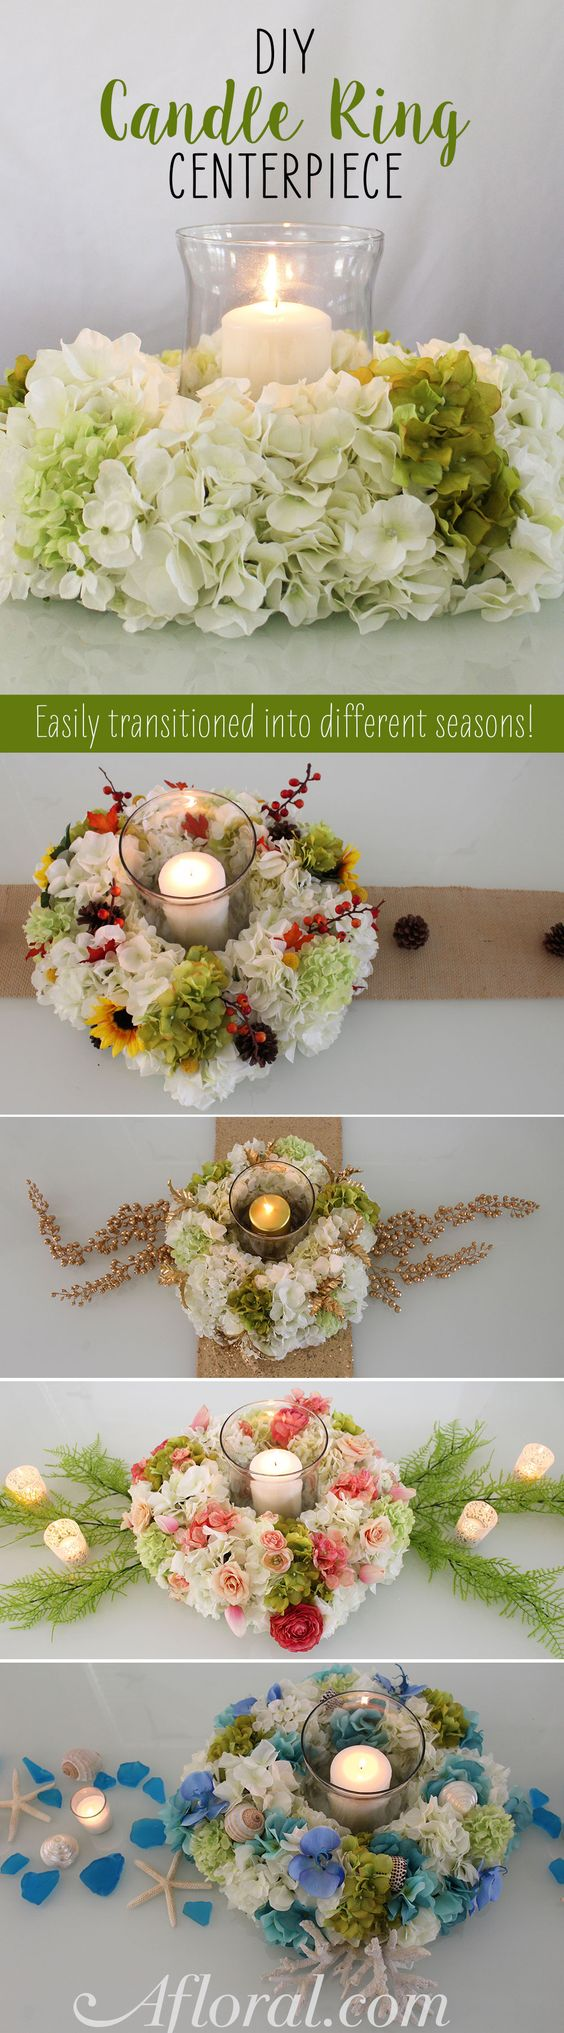 Easy diy centerpieces and candle rings on pinterest